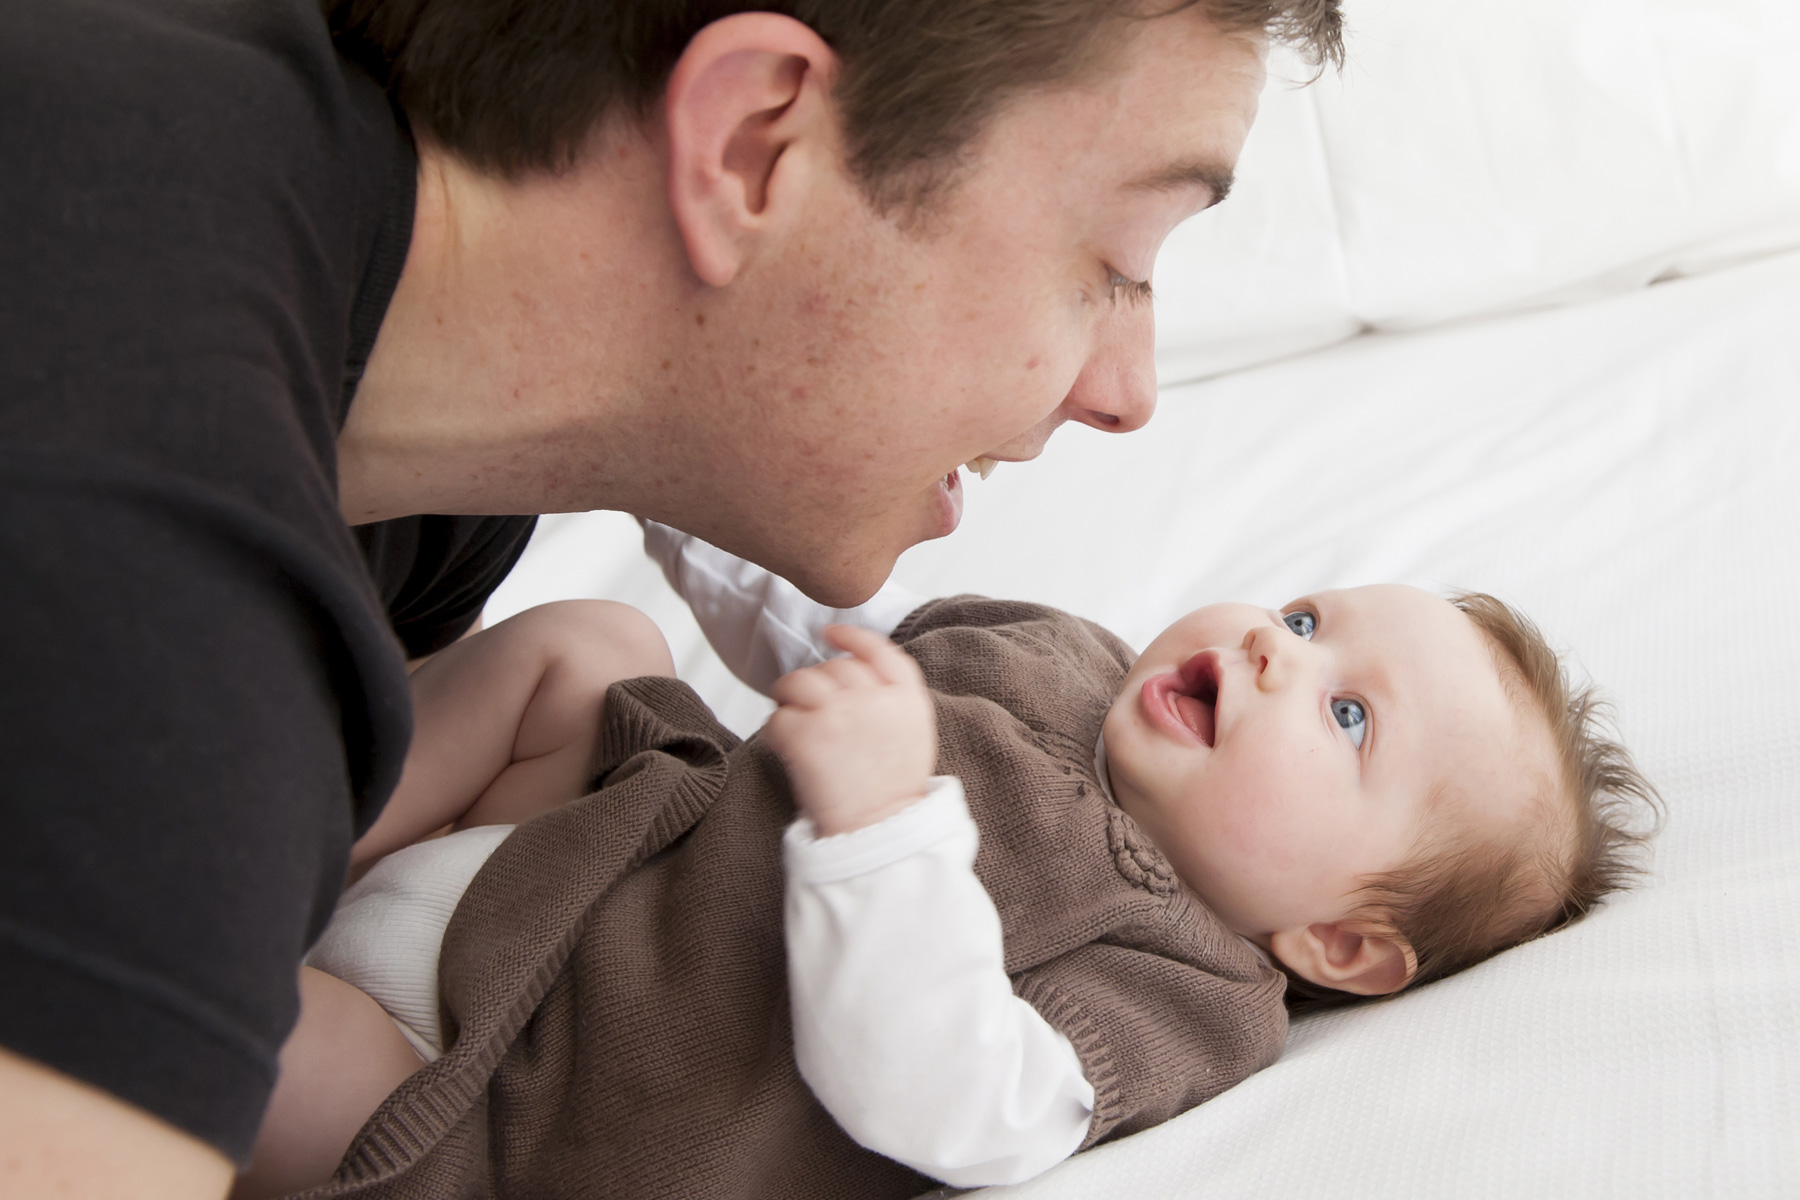 45 Protective Facts About Fatherhood